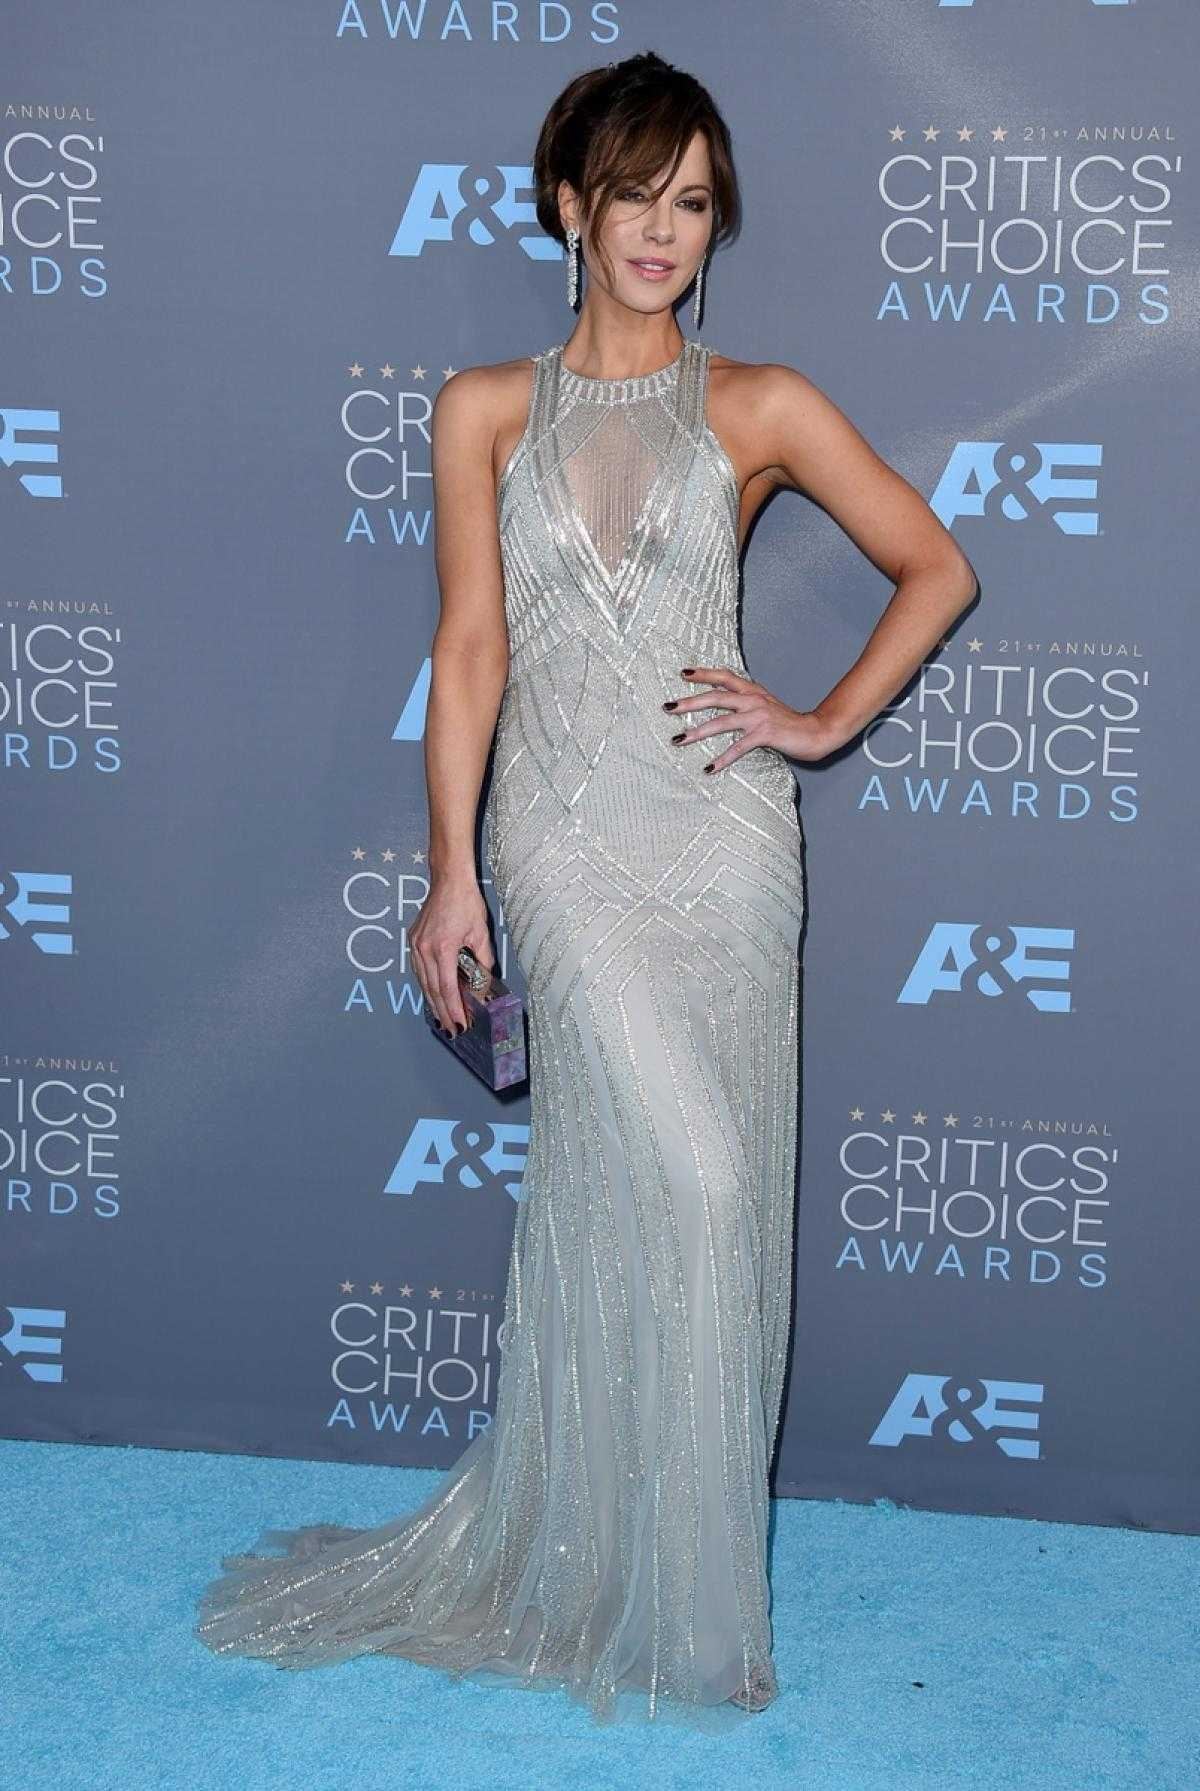 The Critics' Choice Awards: The Best Dressed List | Critics' Choice Awards